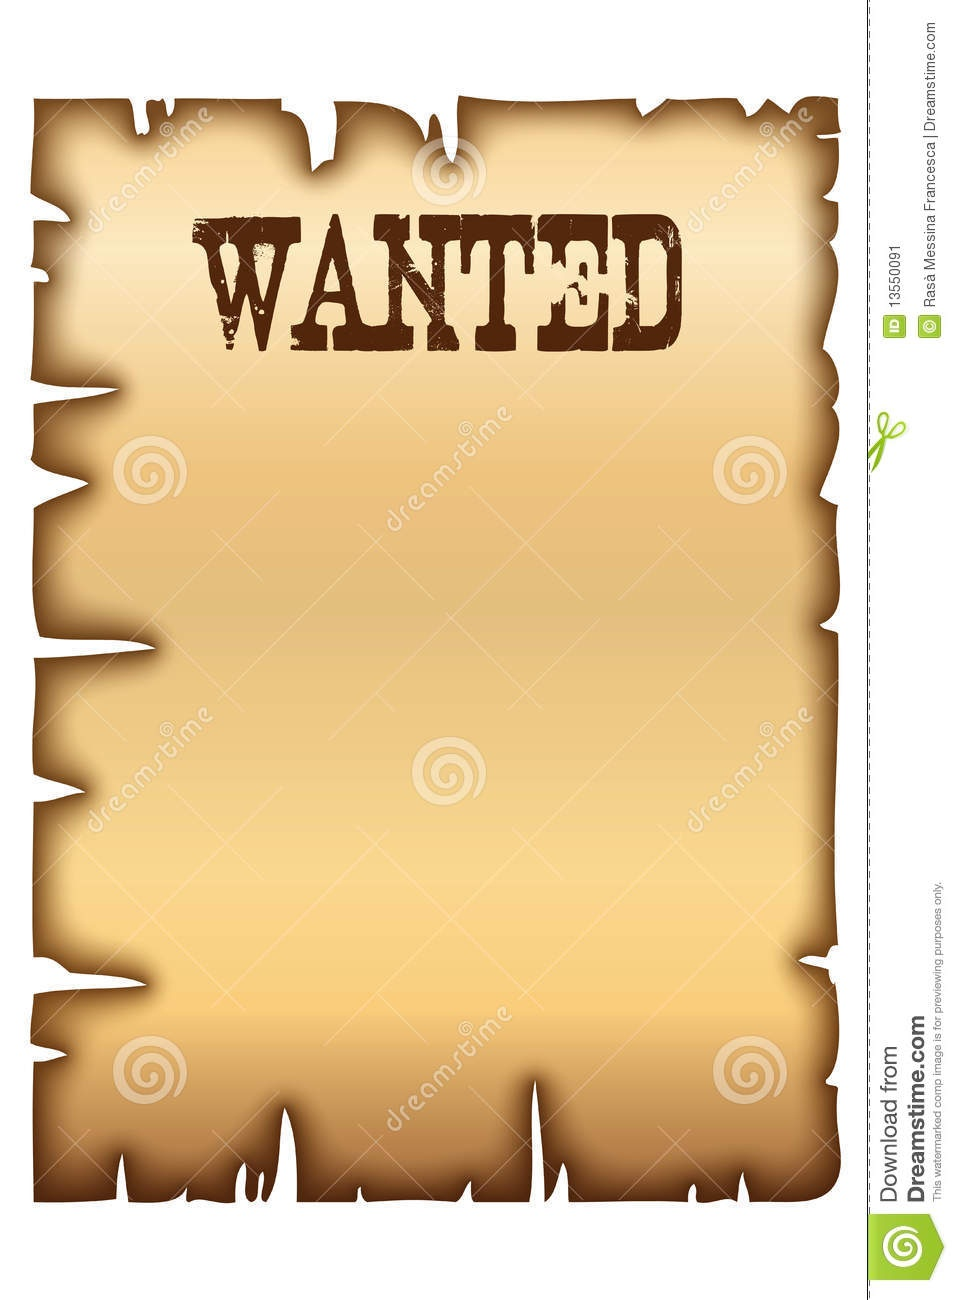 Wanted Poster Stock Vector. Illustration Of Edge, Antique - 13550091 - Wanted Poster Printable Free